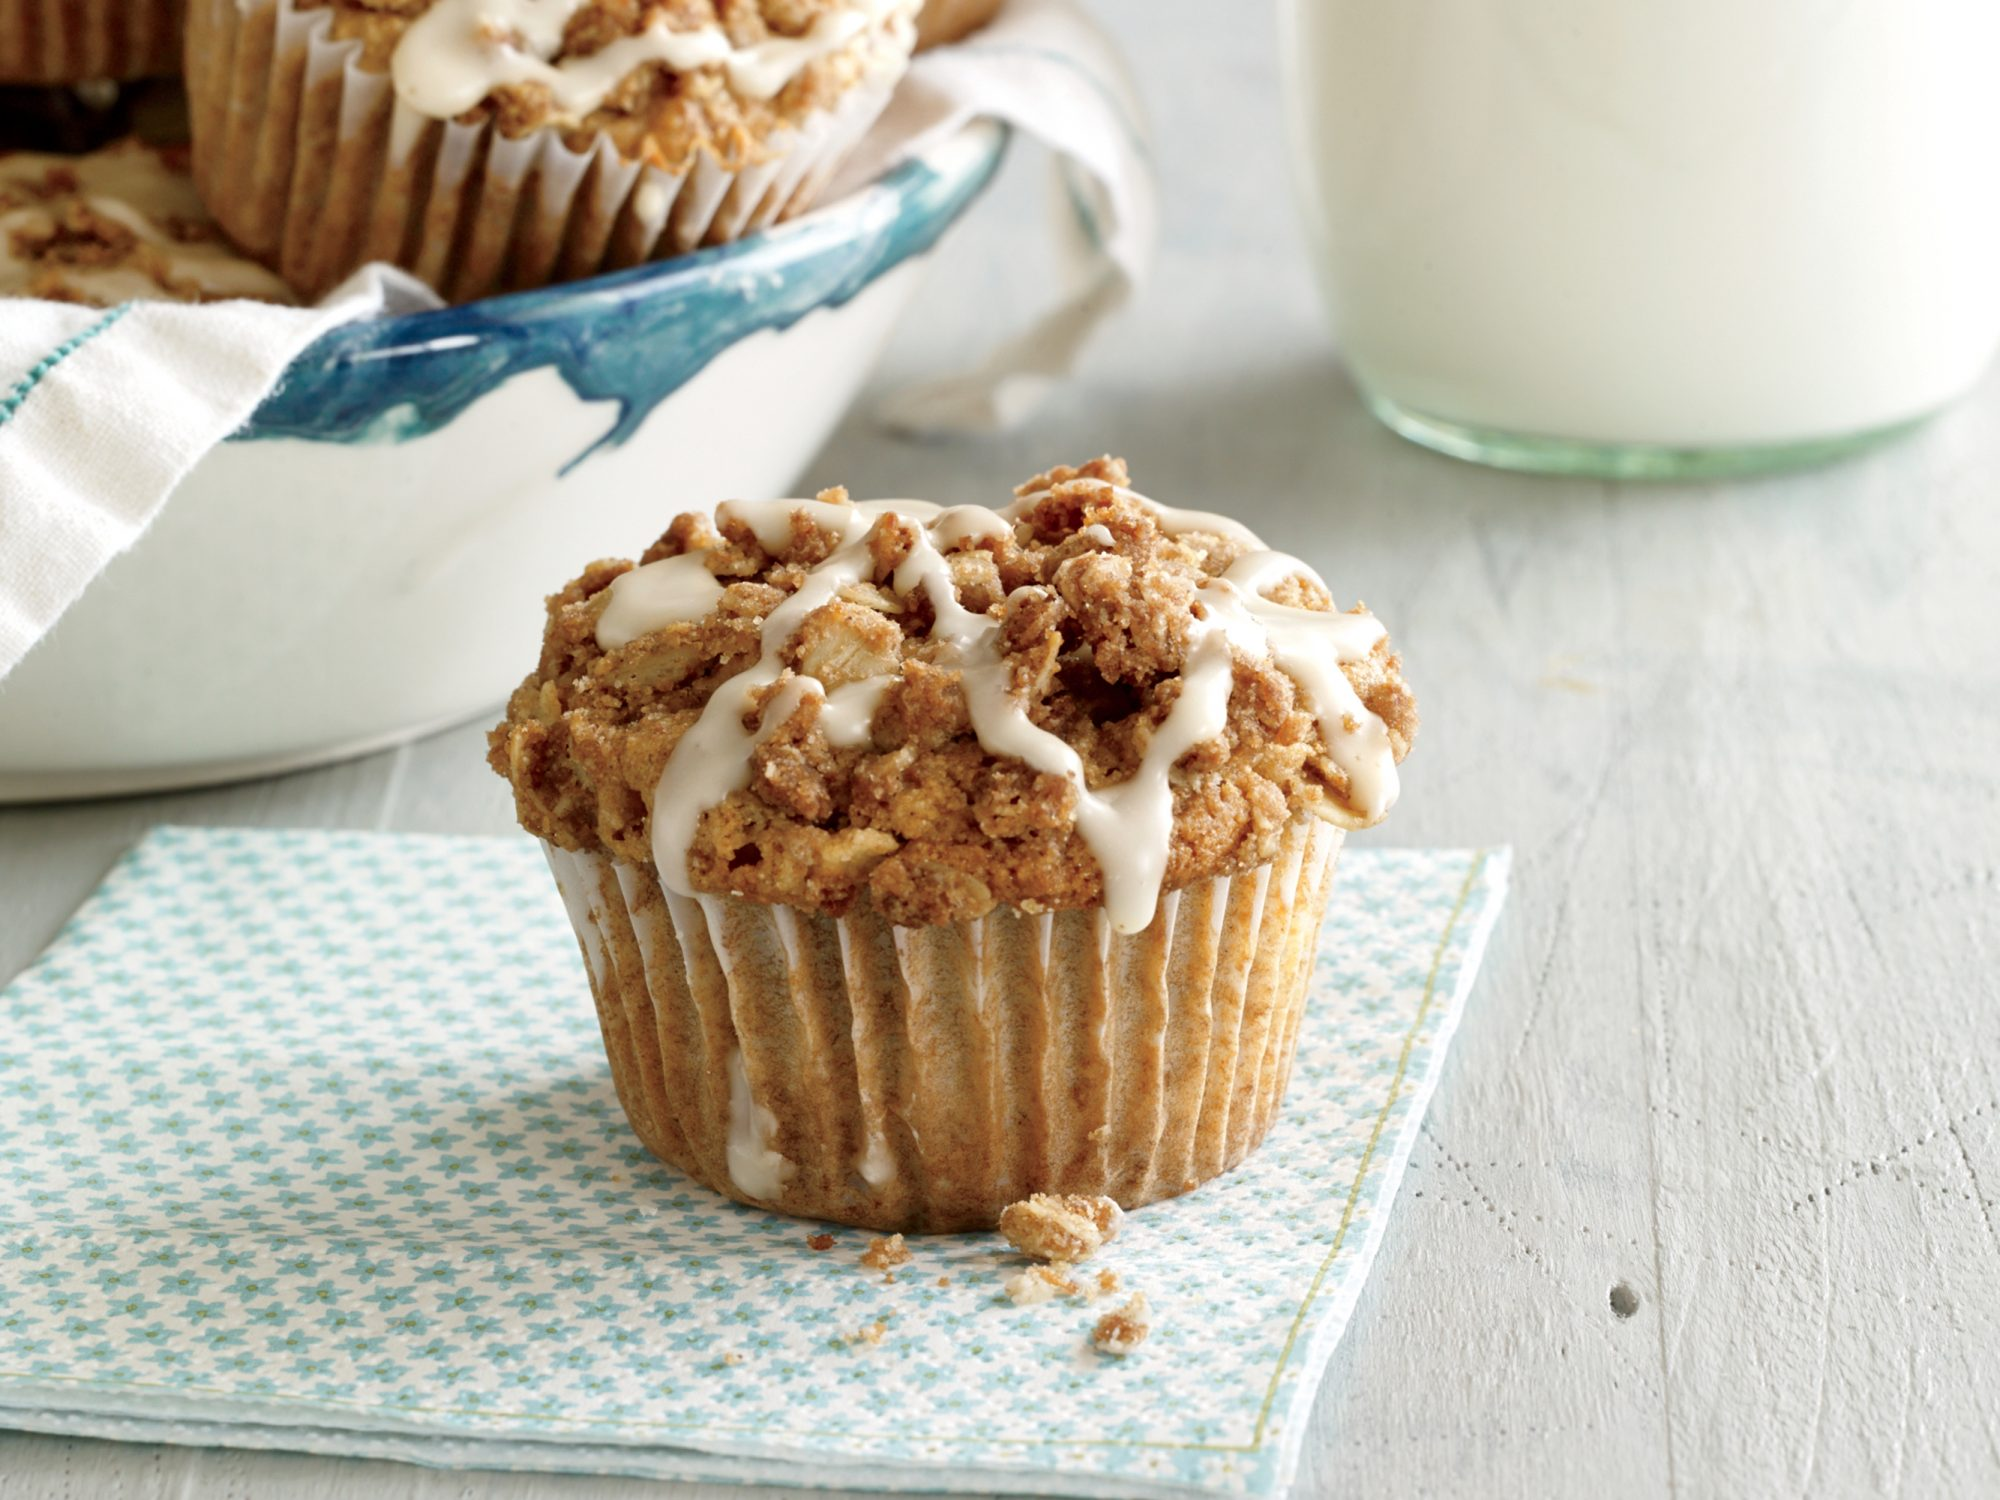 Apple Streusel Muffins with Maple Drizzle